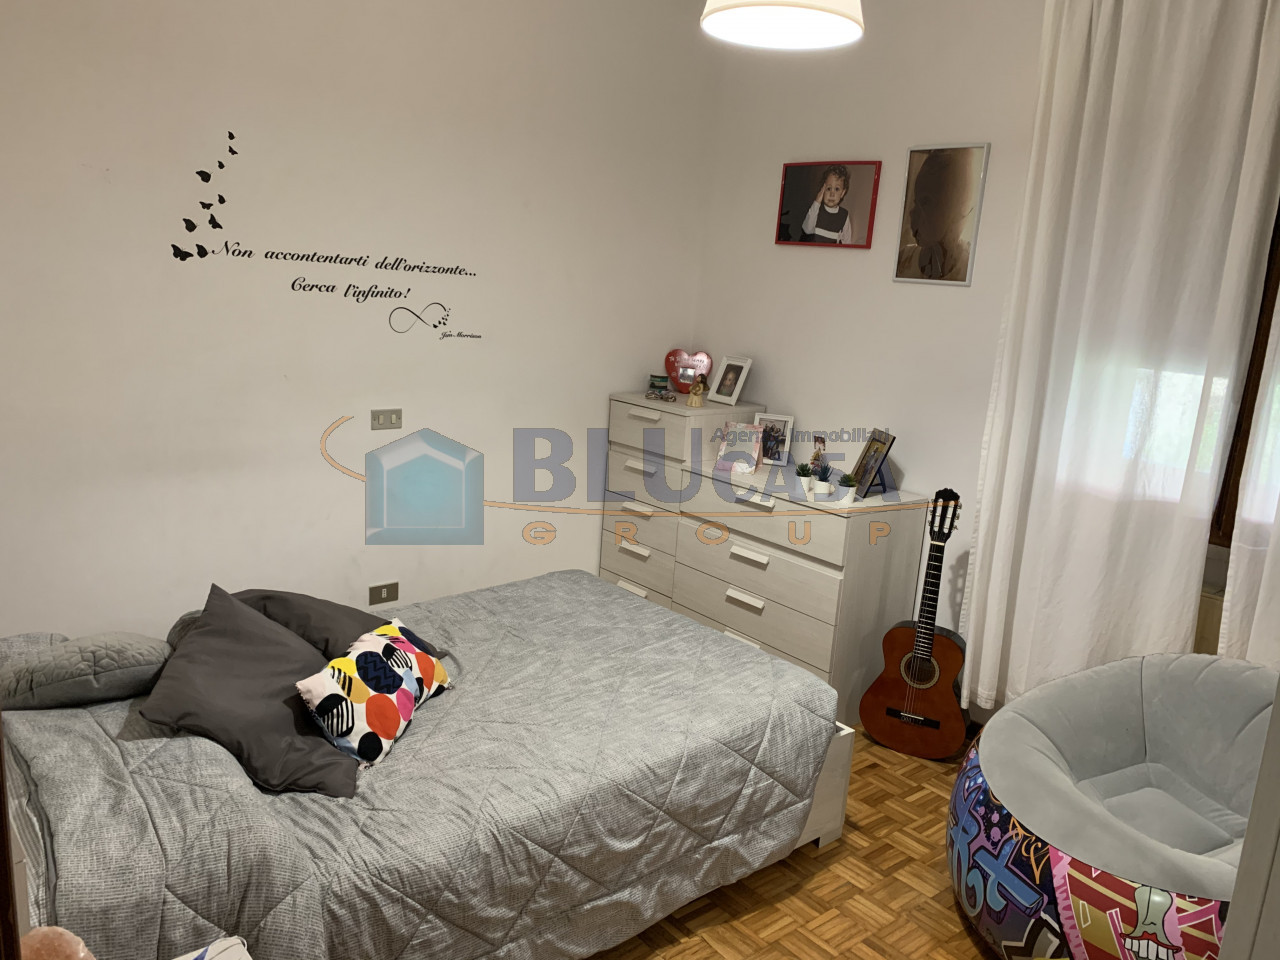 J02 Appartamento 3 camere a Mandriola https://images.gestionaleimmobiliare.it/foto/annunci/210609/2623100/1280x1280/007__anyconv_com__img_3590.jpg